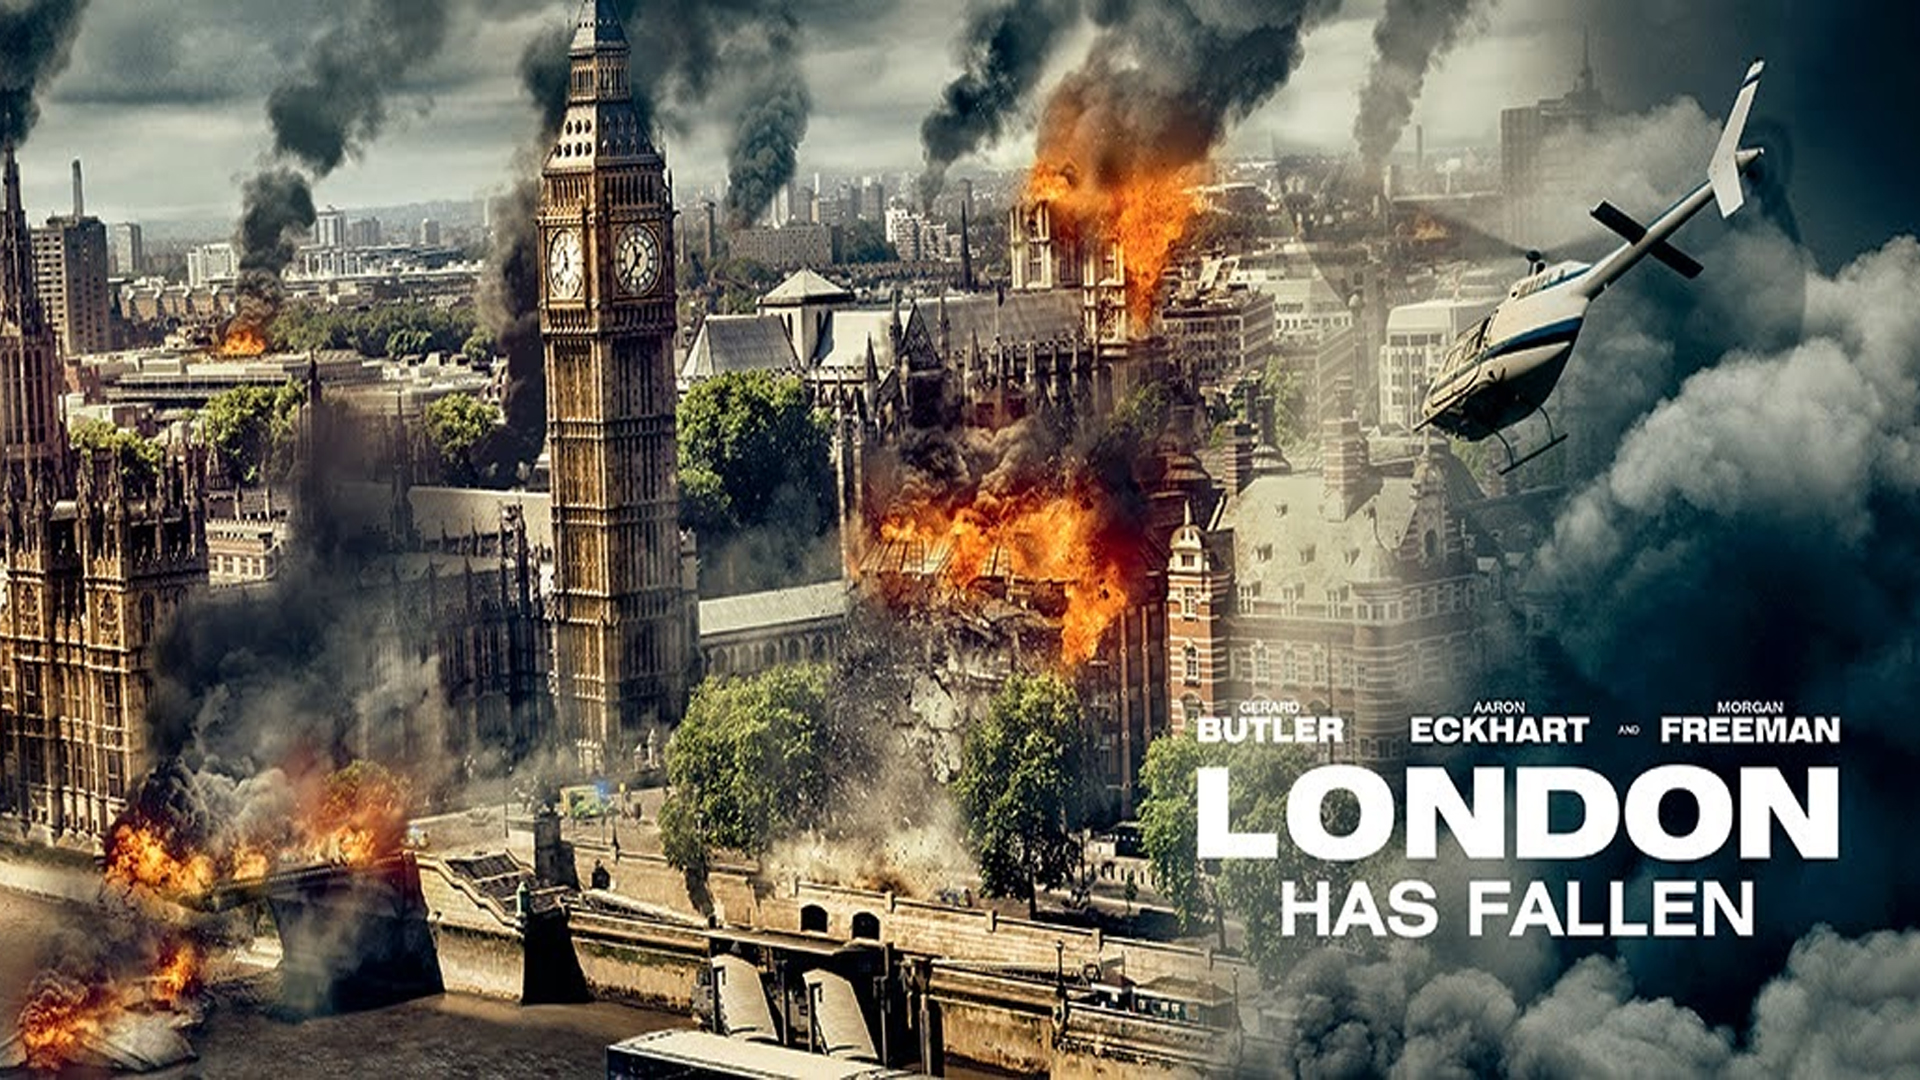 Bill Z chats with stars of 'London Has Fallen'